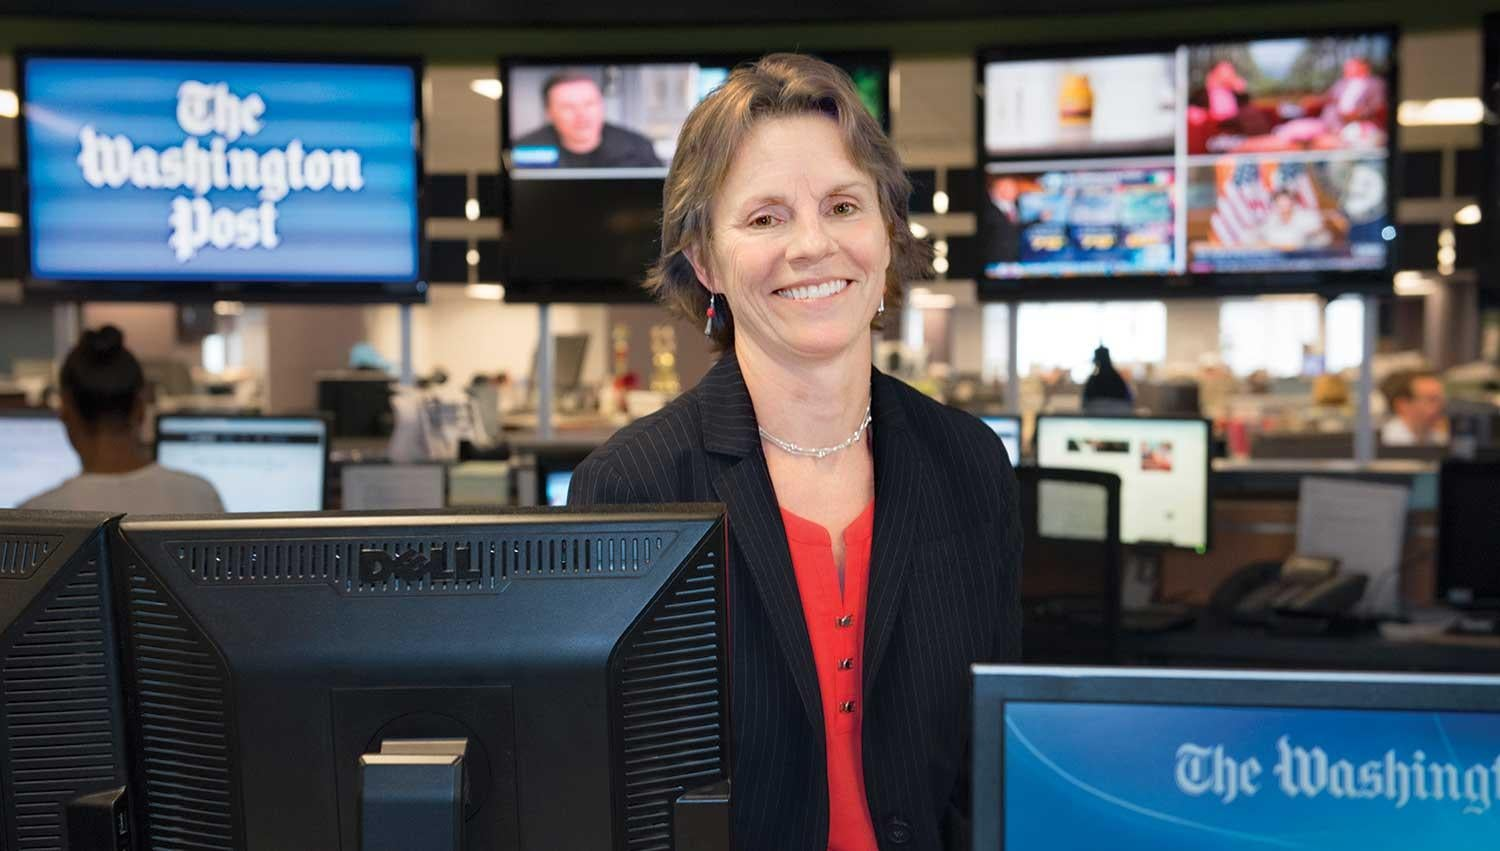 Barbara Vobejda sits in The Hub in The Washington Post's newsroom.